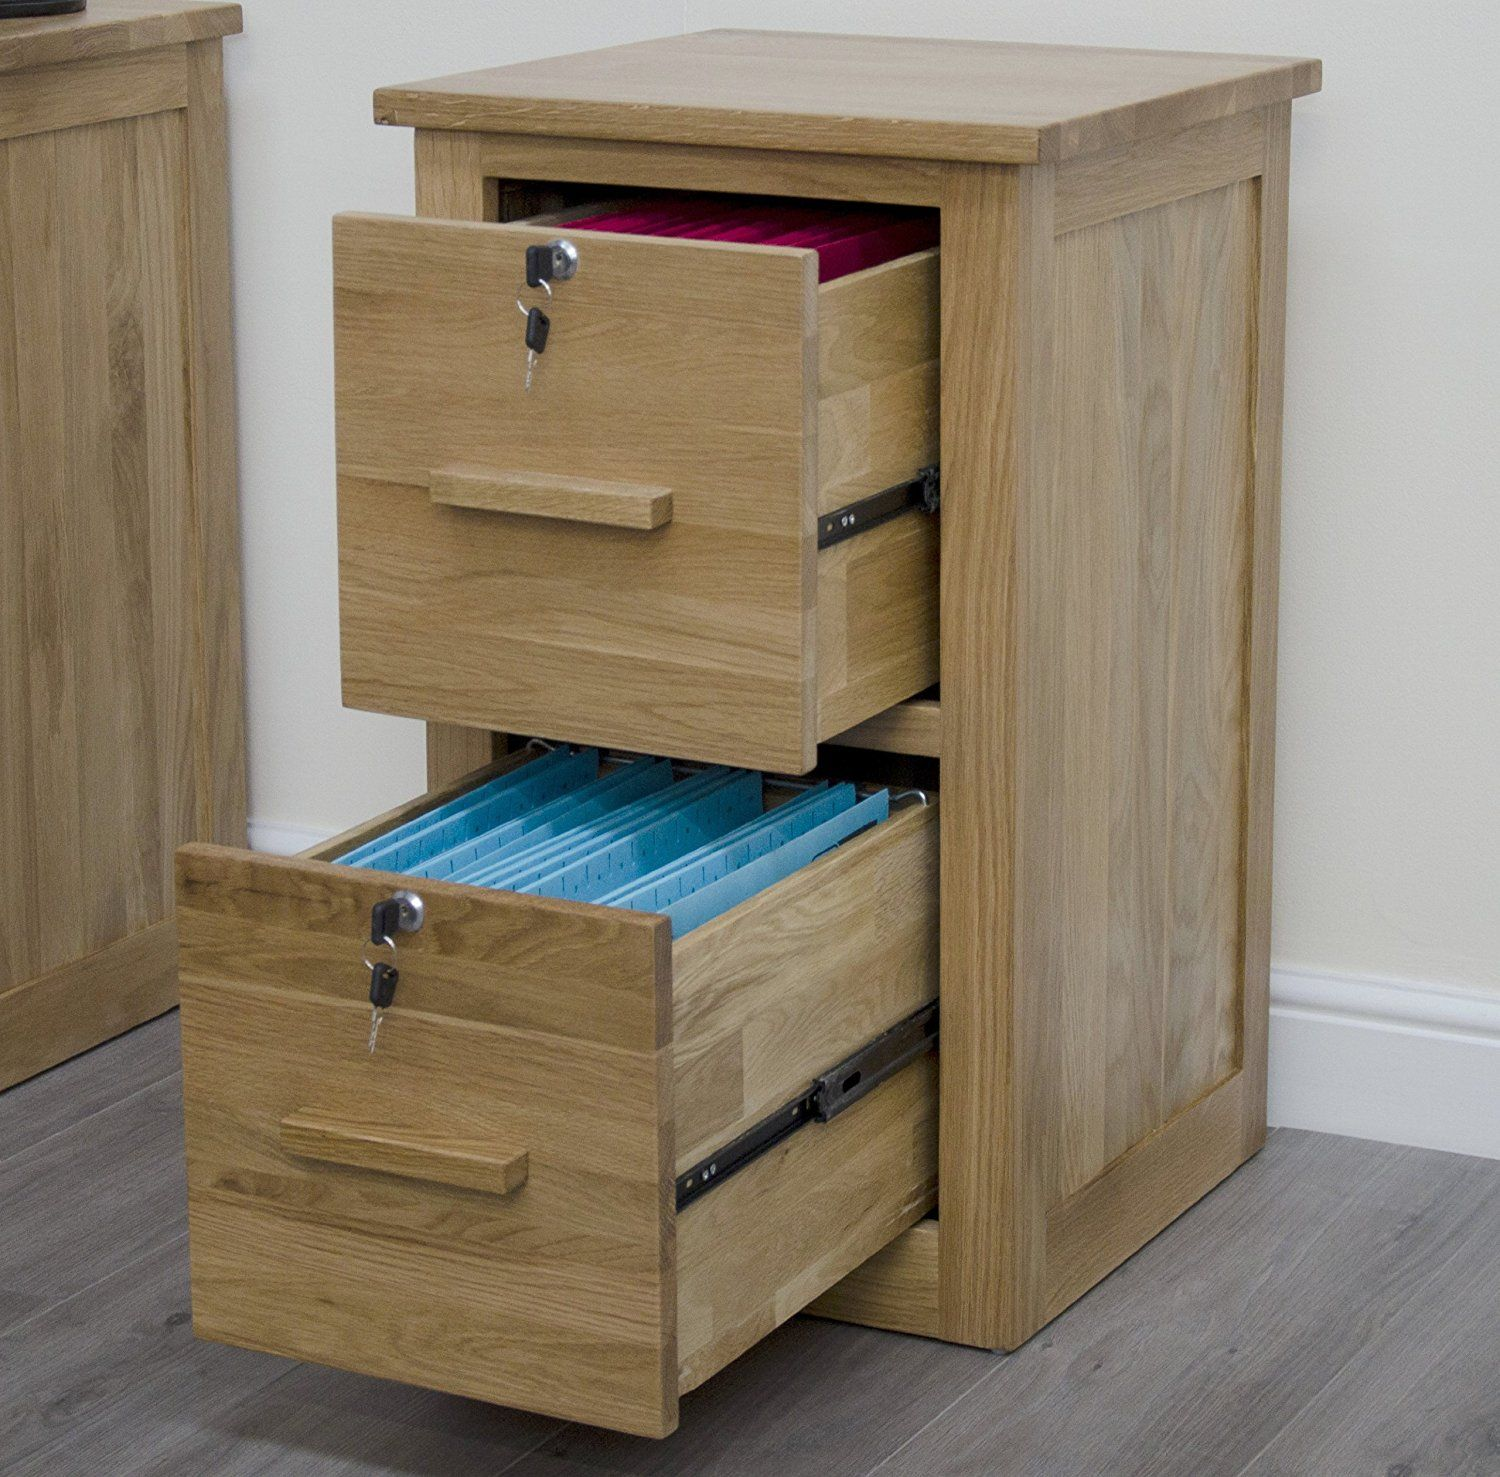 2019 Locking Office Cabinet Home Furniture Desk Check More At Http